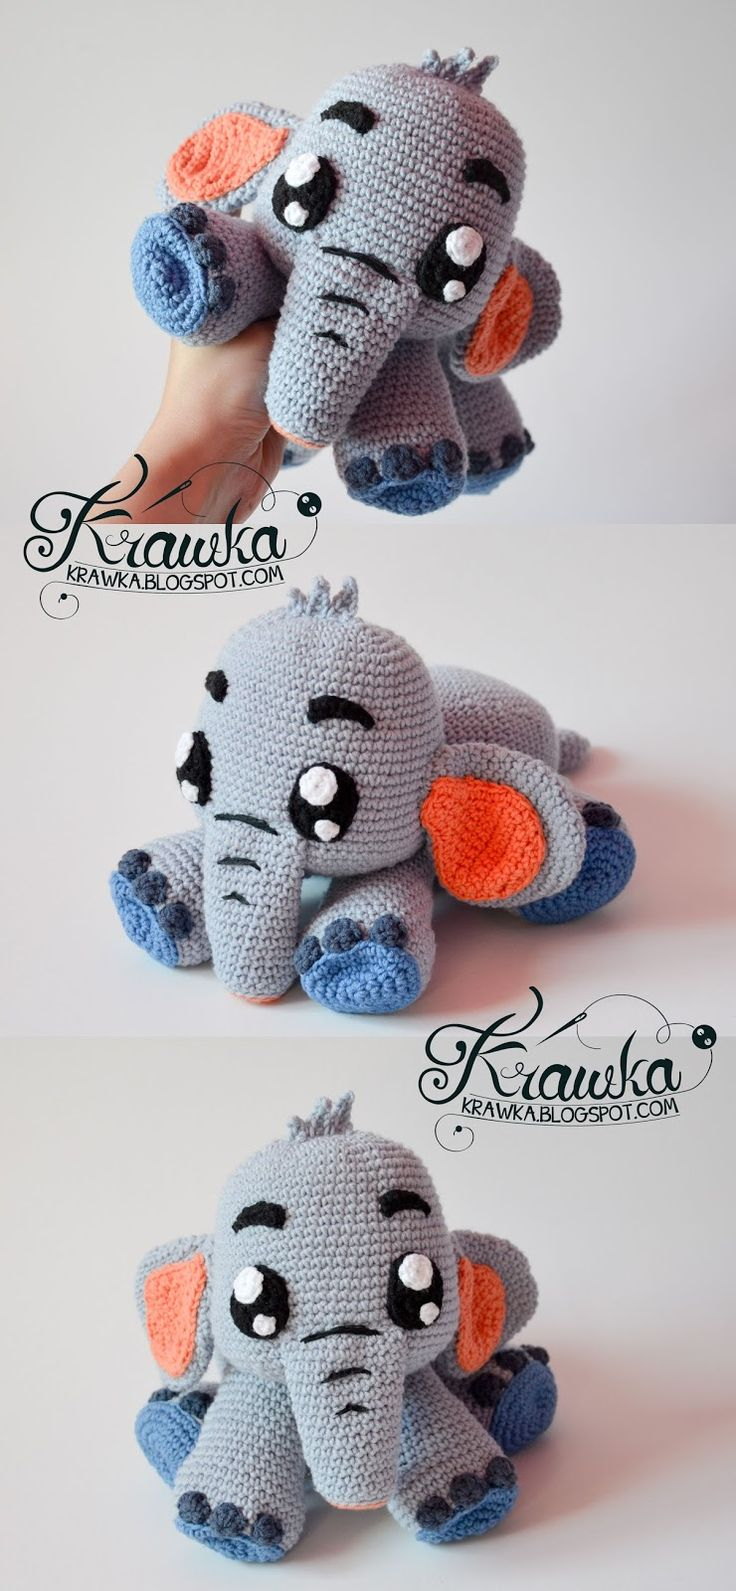 Crochet projects that will amaze You: dinosaurs, aliens, zombie pirate panda, vampires, robots, Cheshire cats and other amazing projects with free patterns